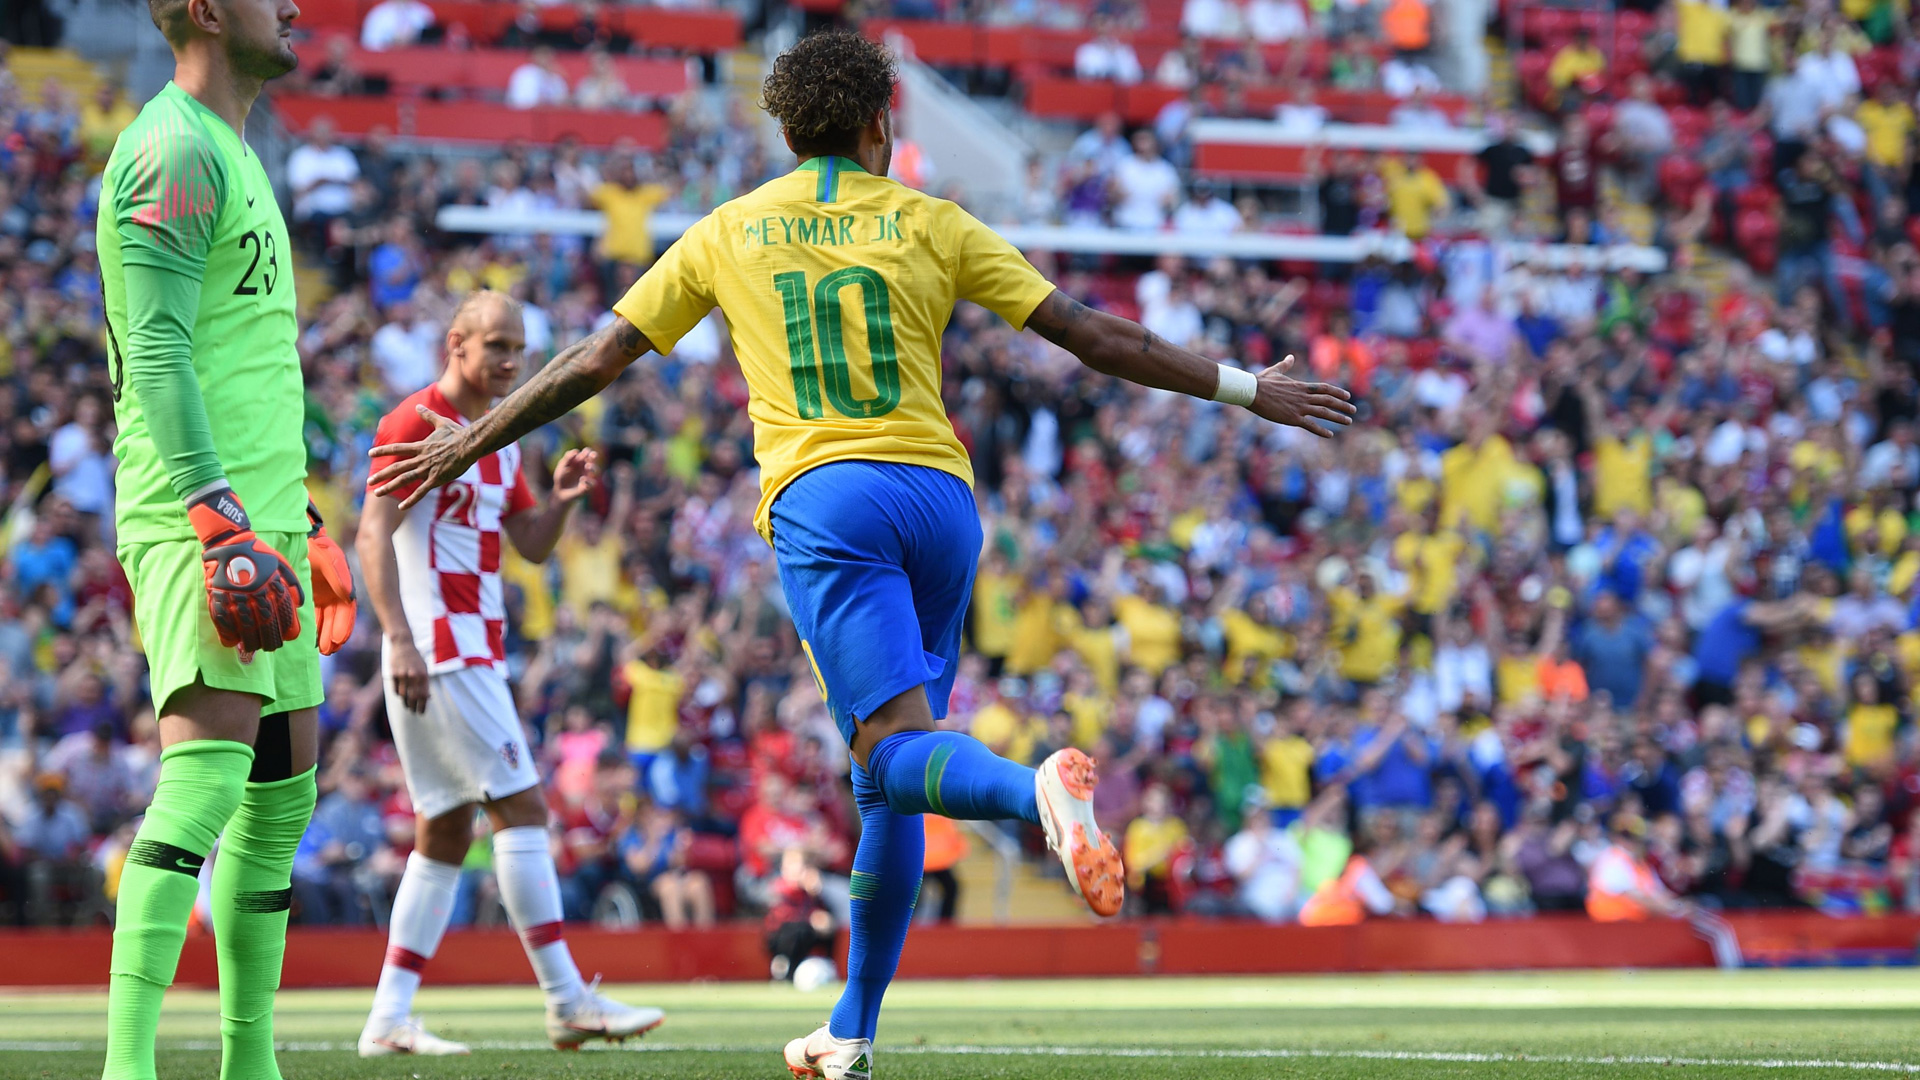 Neymar can fire Brazil to redemption backed up by all-star supporting cast